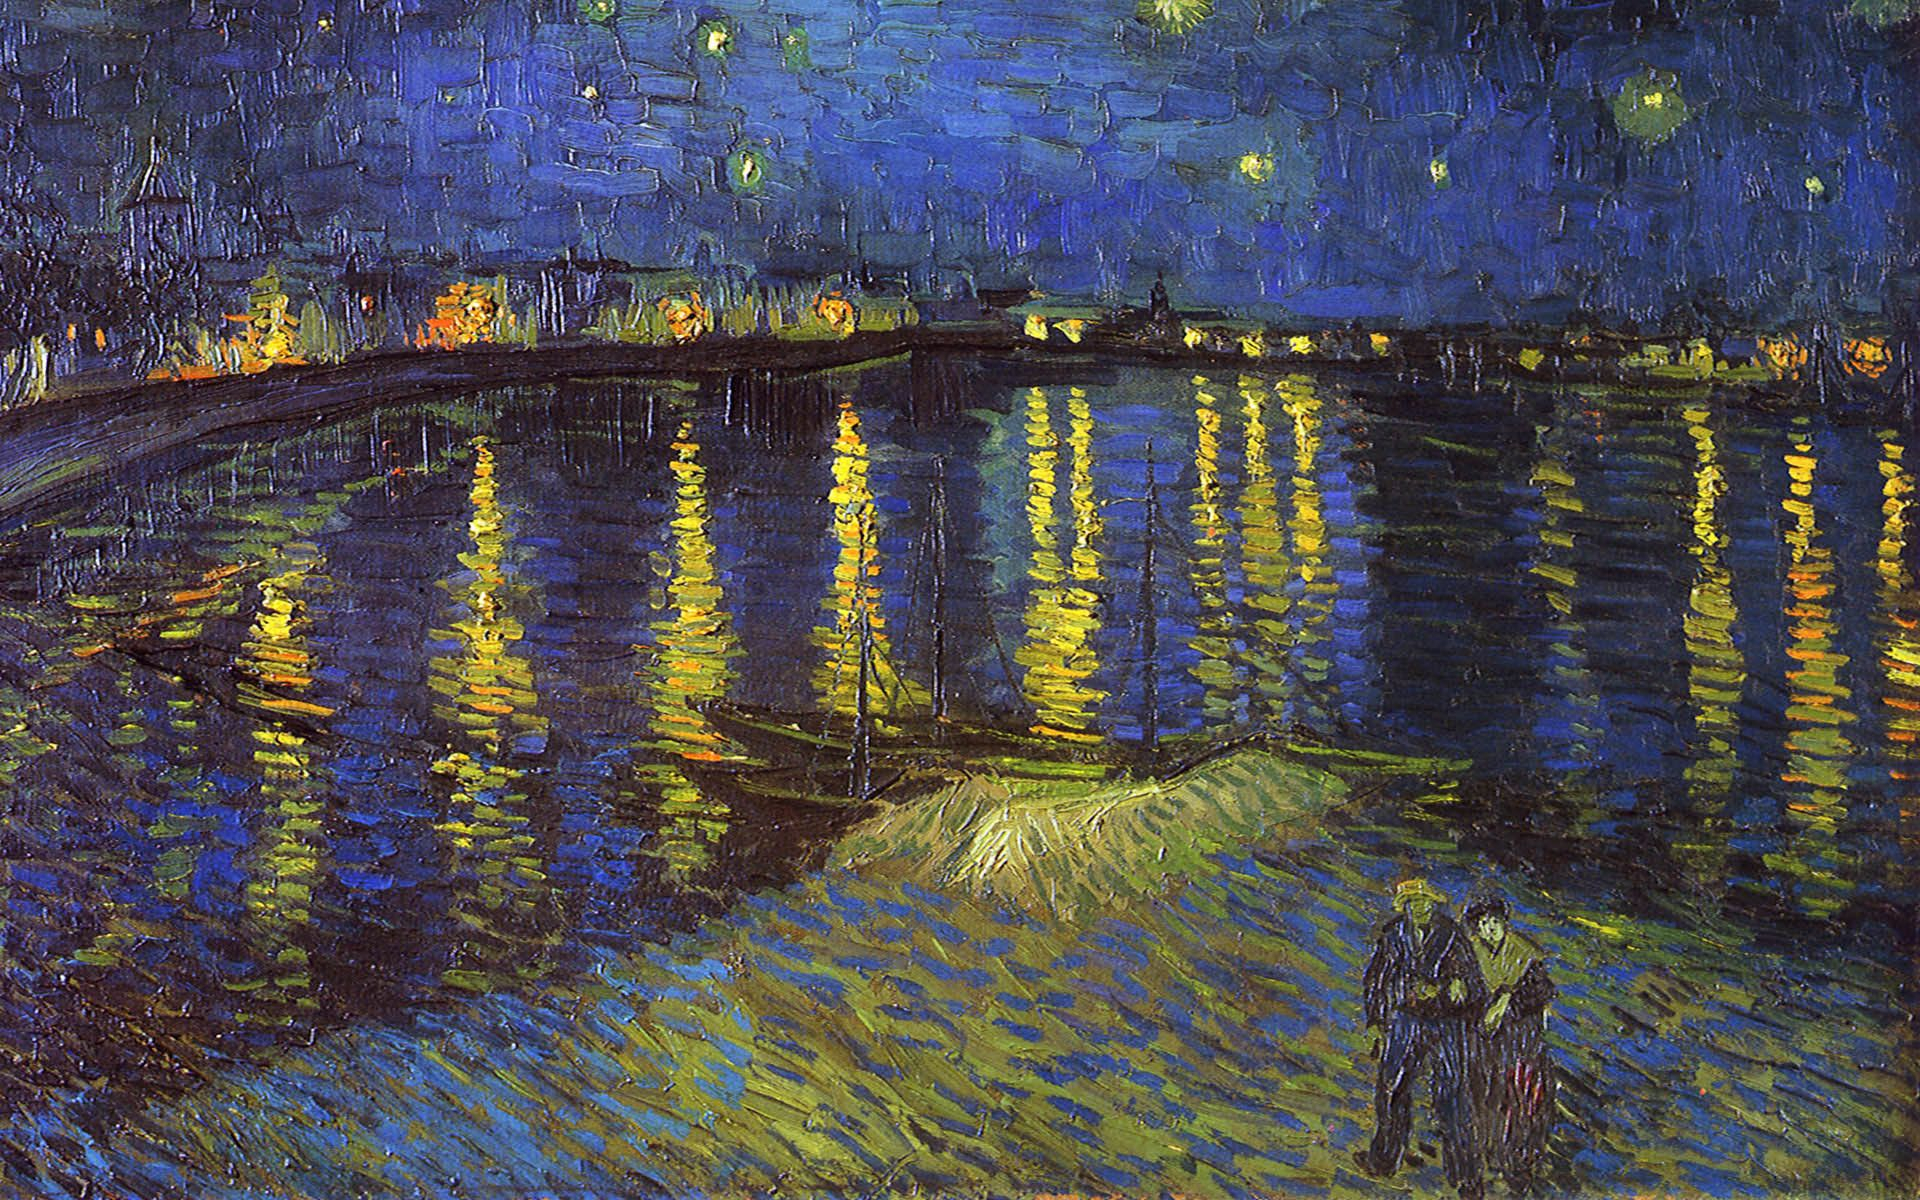 van gogh computer wallpapers - top free van gogh computer